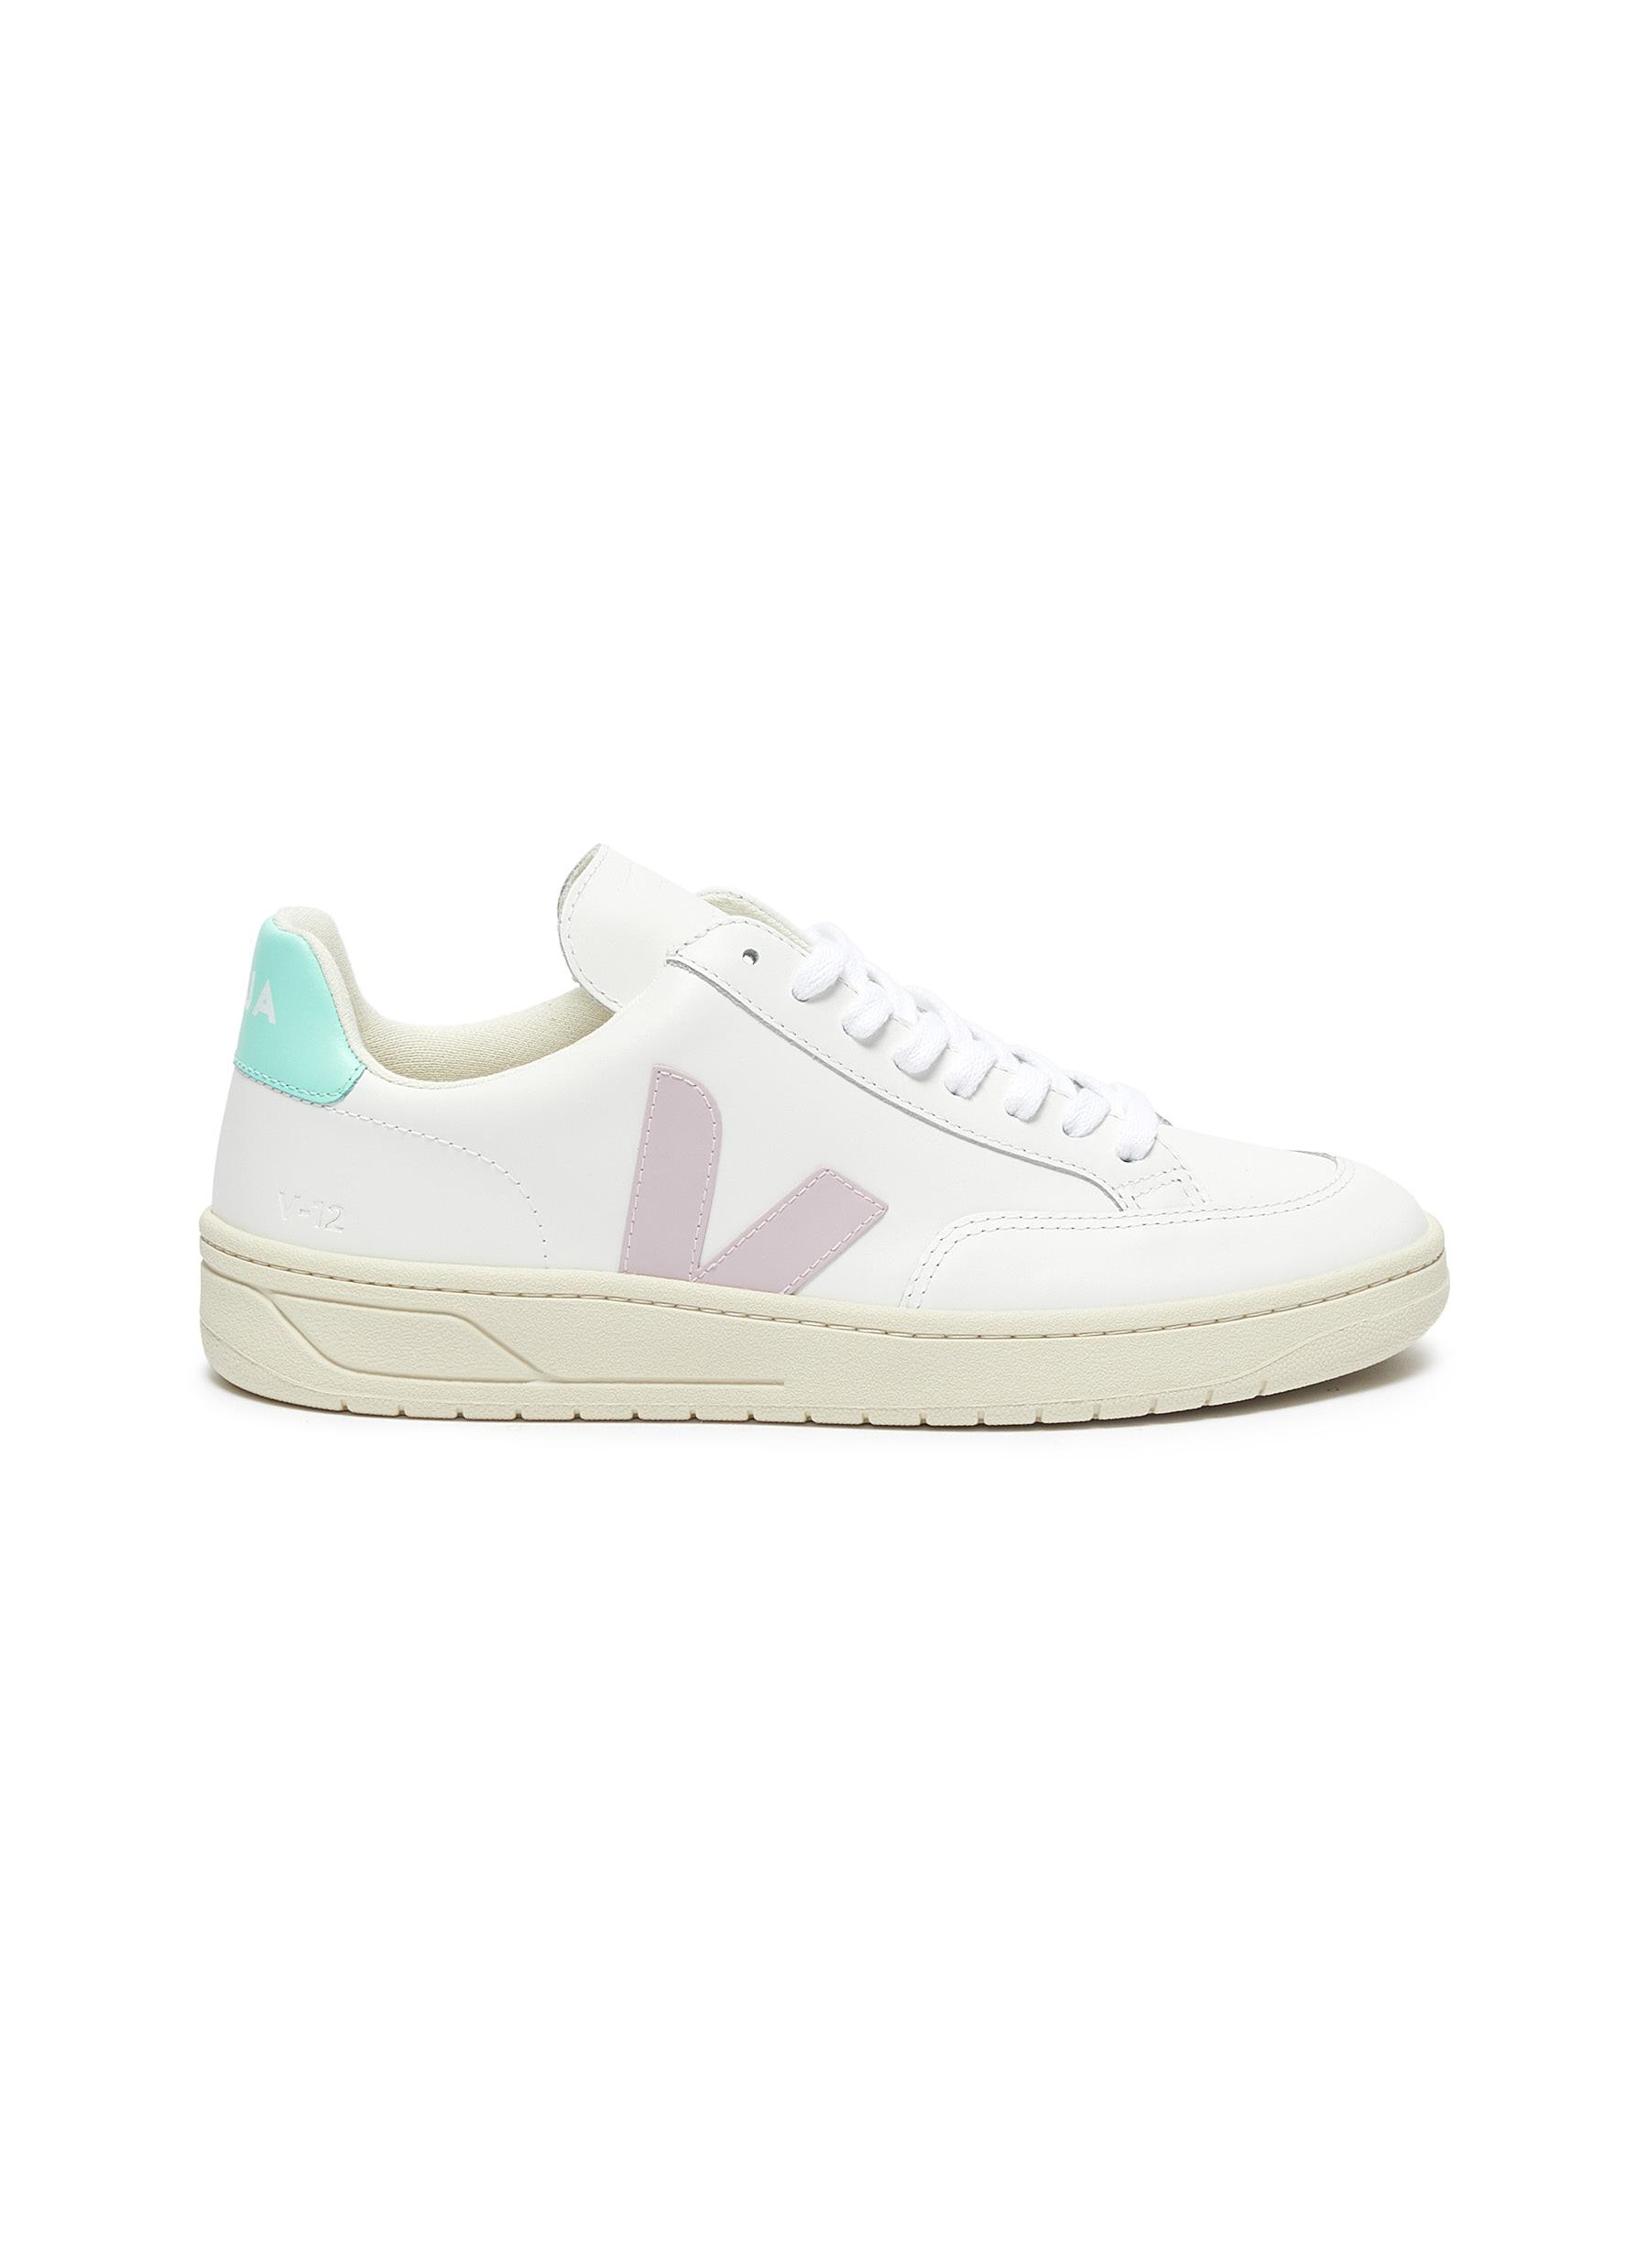 Veja Sneakers V-12 colourblock leather sneakers